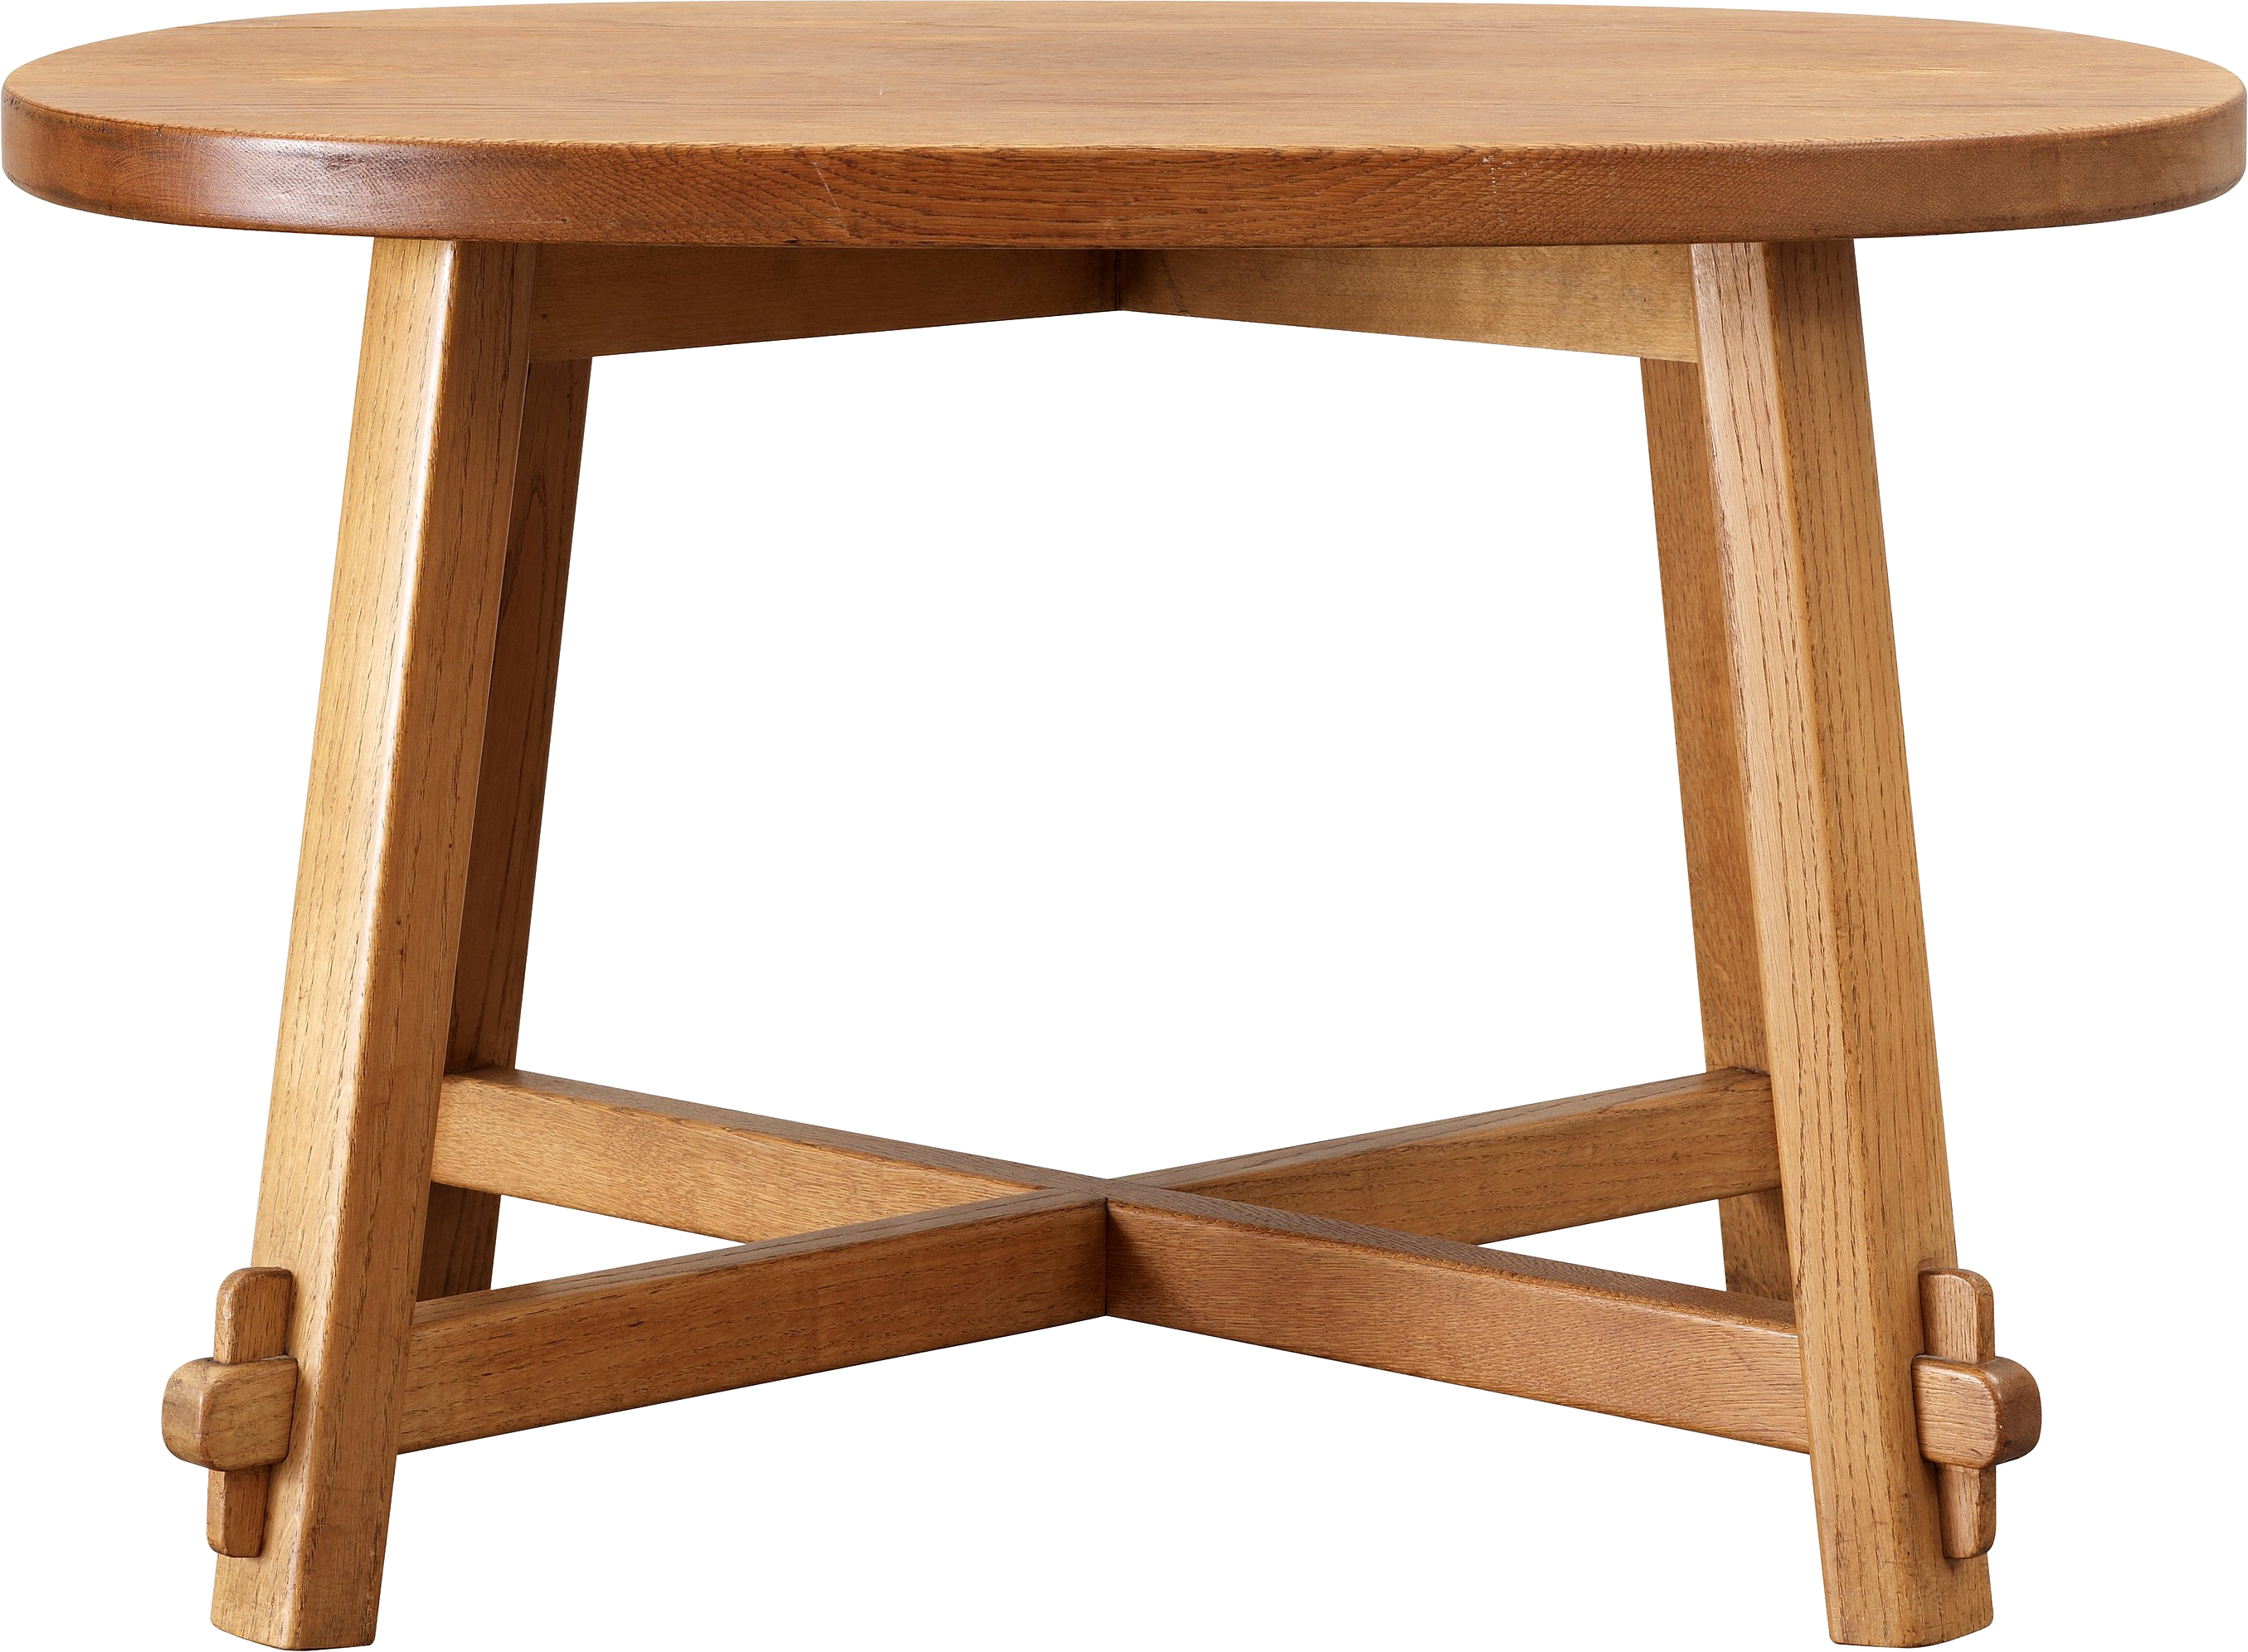 Wooden Table Png Image Outdoor Wood Furniture Wooden Tables Table Stool